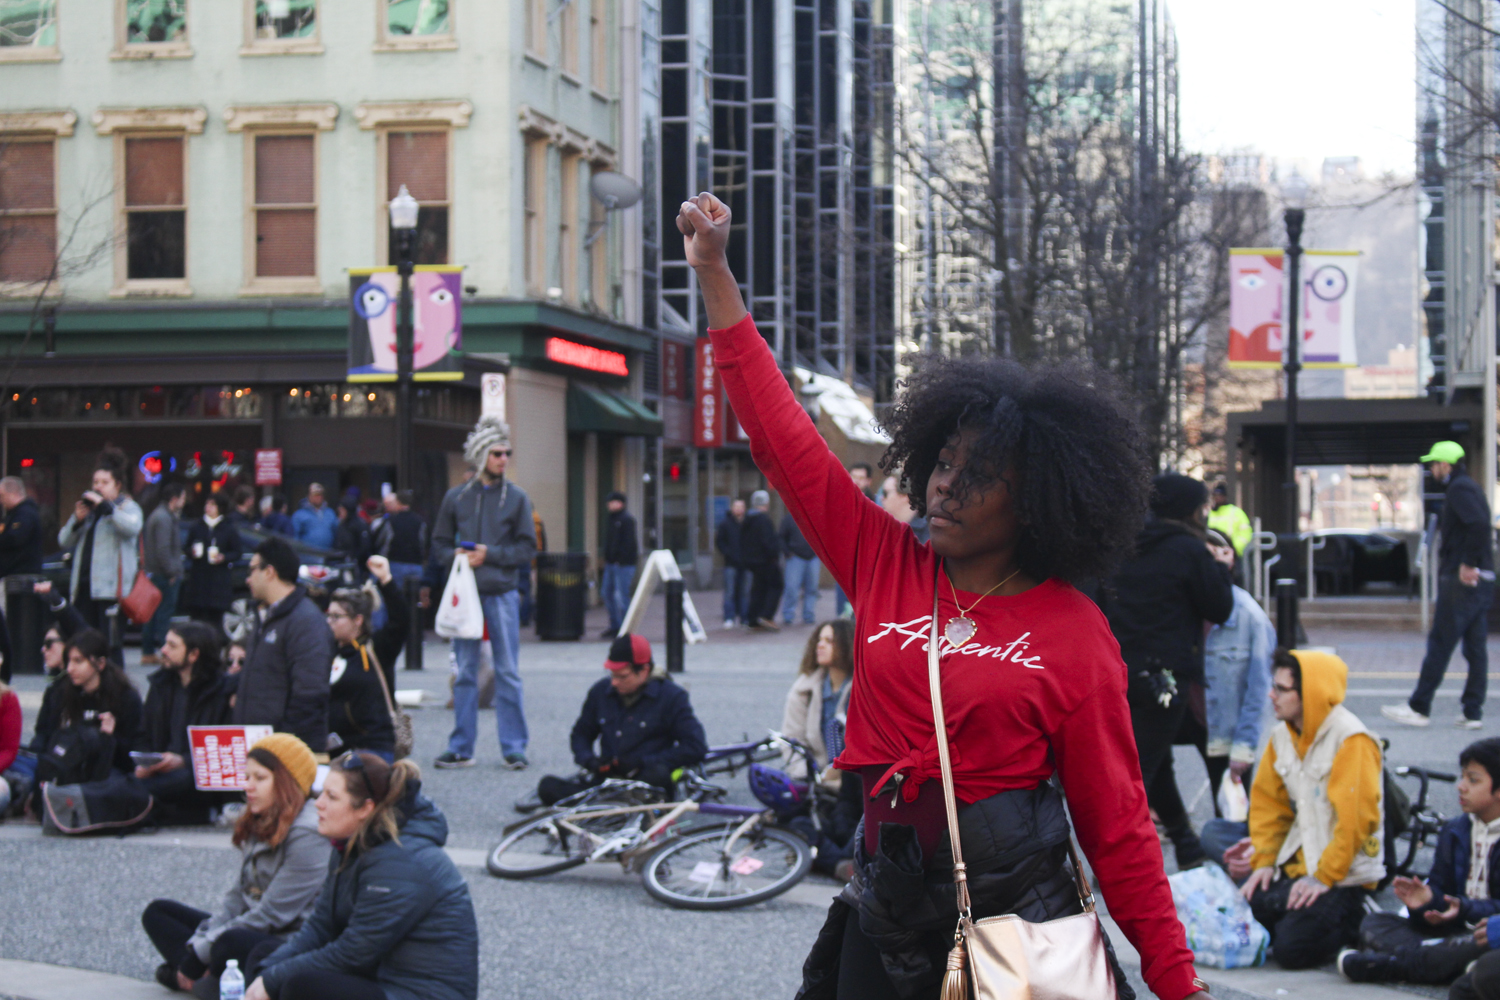 Protesters marched from Freedom Corner in the Hill District to Market Square, where they continued their demonstration.